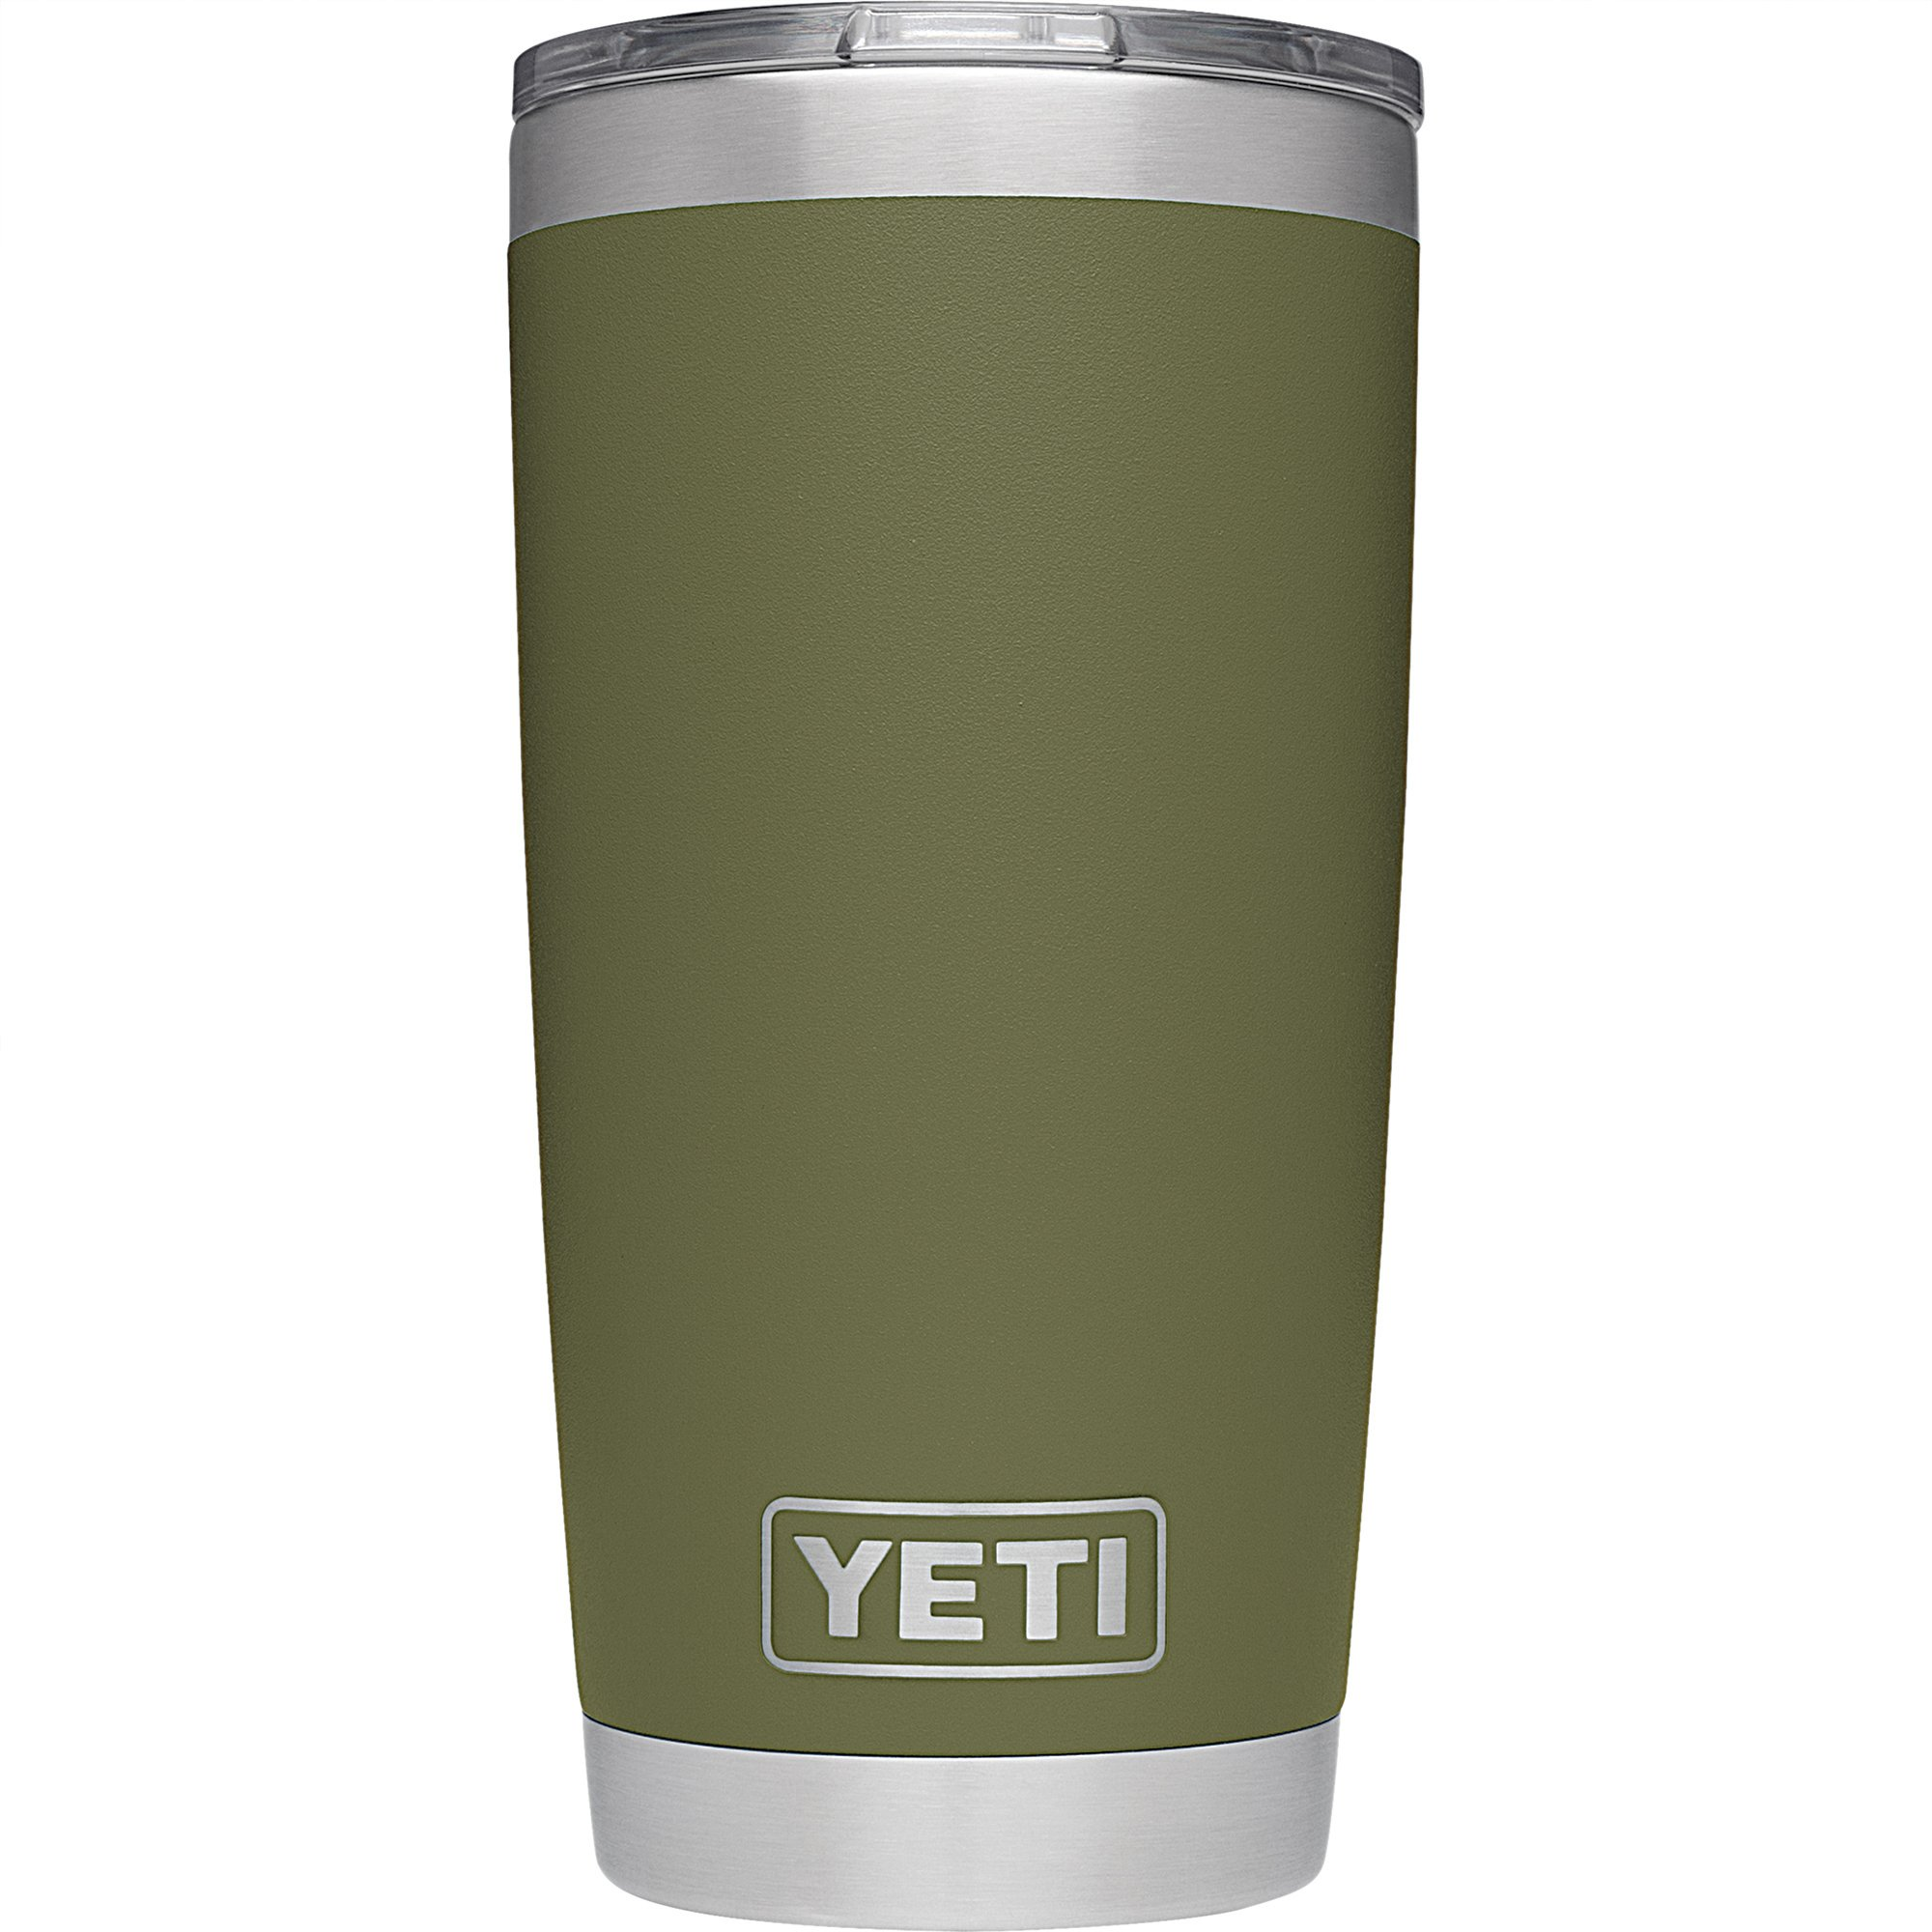 YETI 28000000548 20Oz Olive Green Rambler, 1 EA by YETI